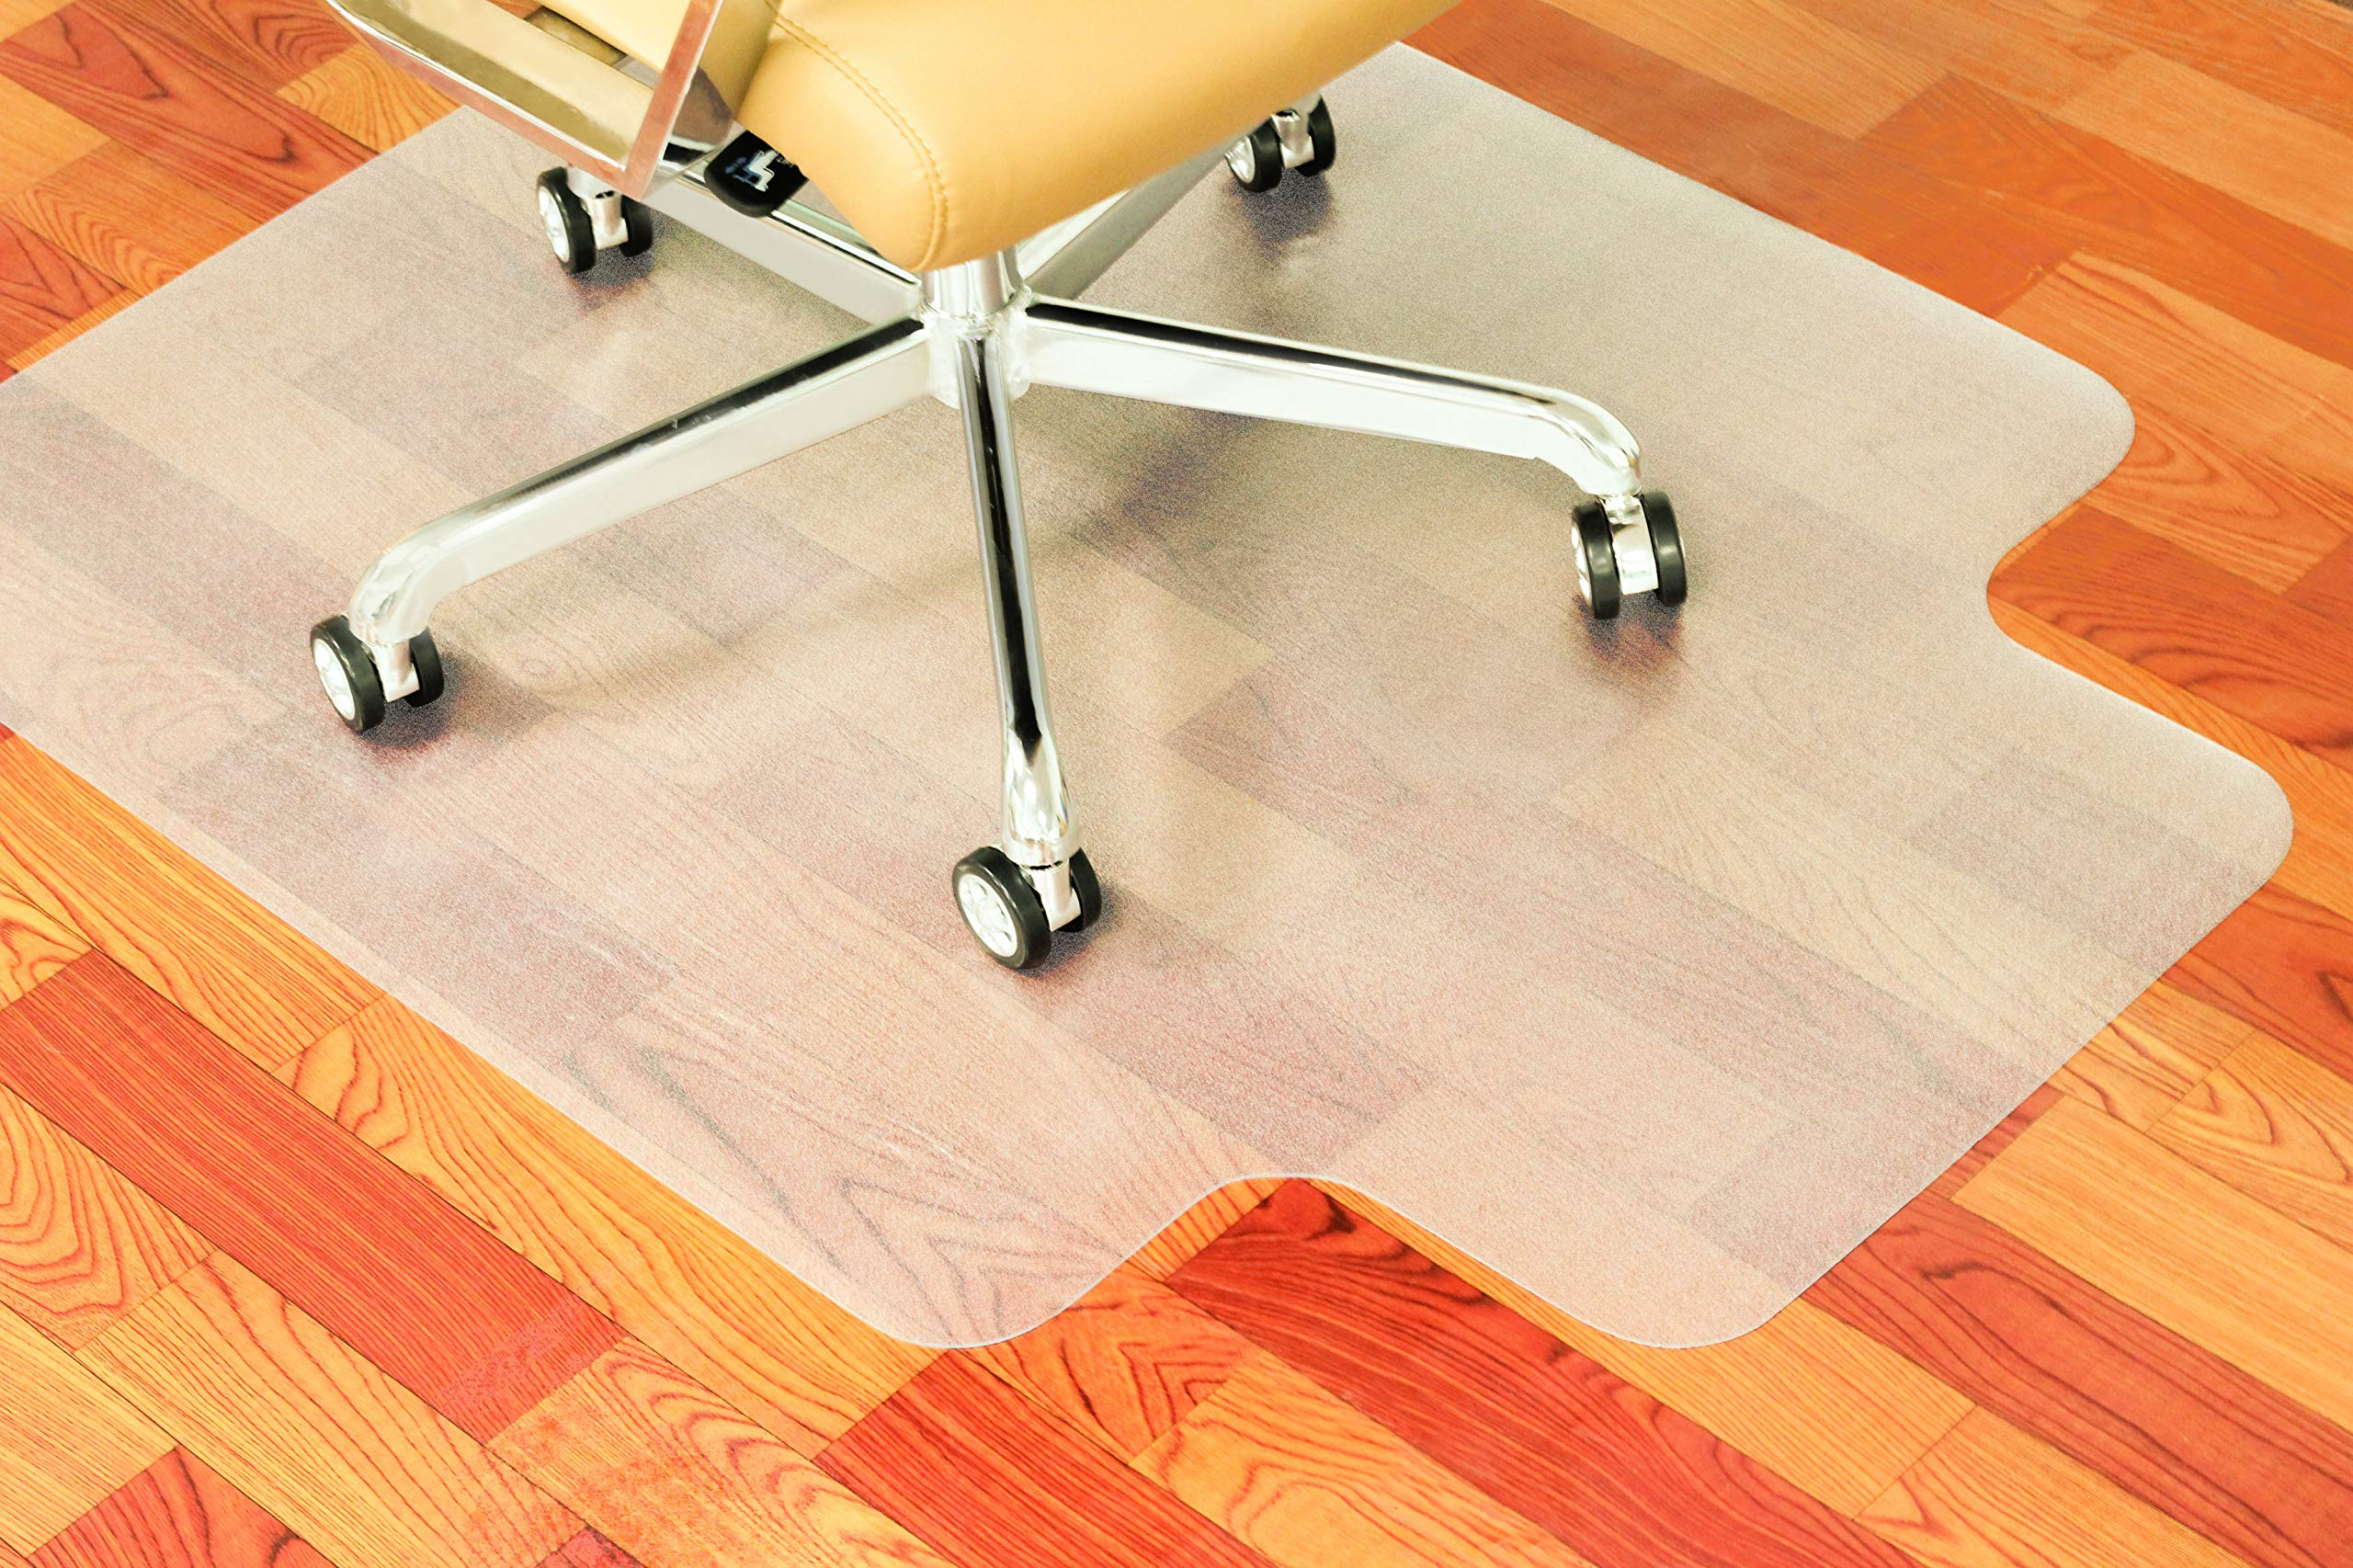 SOUNDANCE Office Chair Mat for Hard Floor, 36 x 48 Inch with Lip, Thick Hard Smooth Heavy Duty Sturdy, PC Under Desk Chair Pad Protector for Hardwood Floor Computer Gaming Rolling Chair